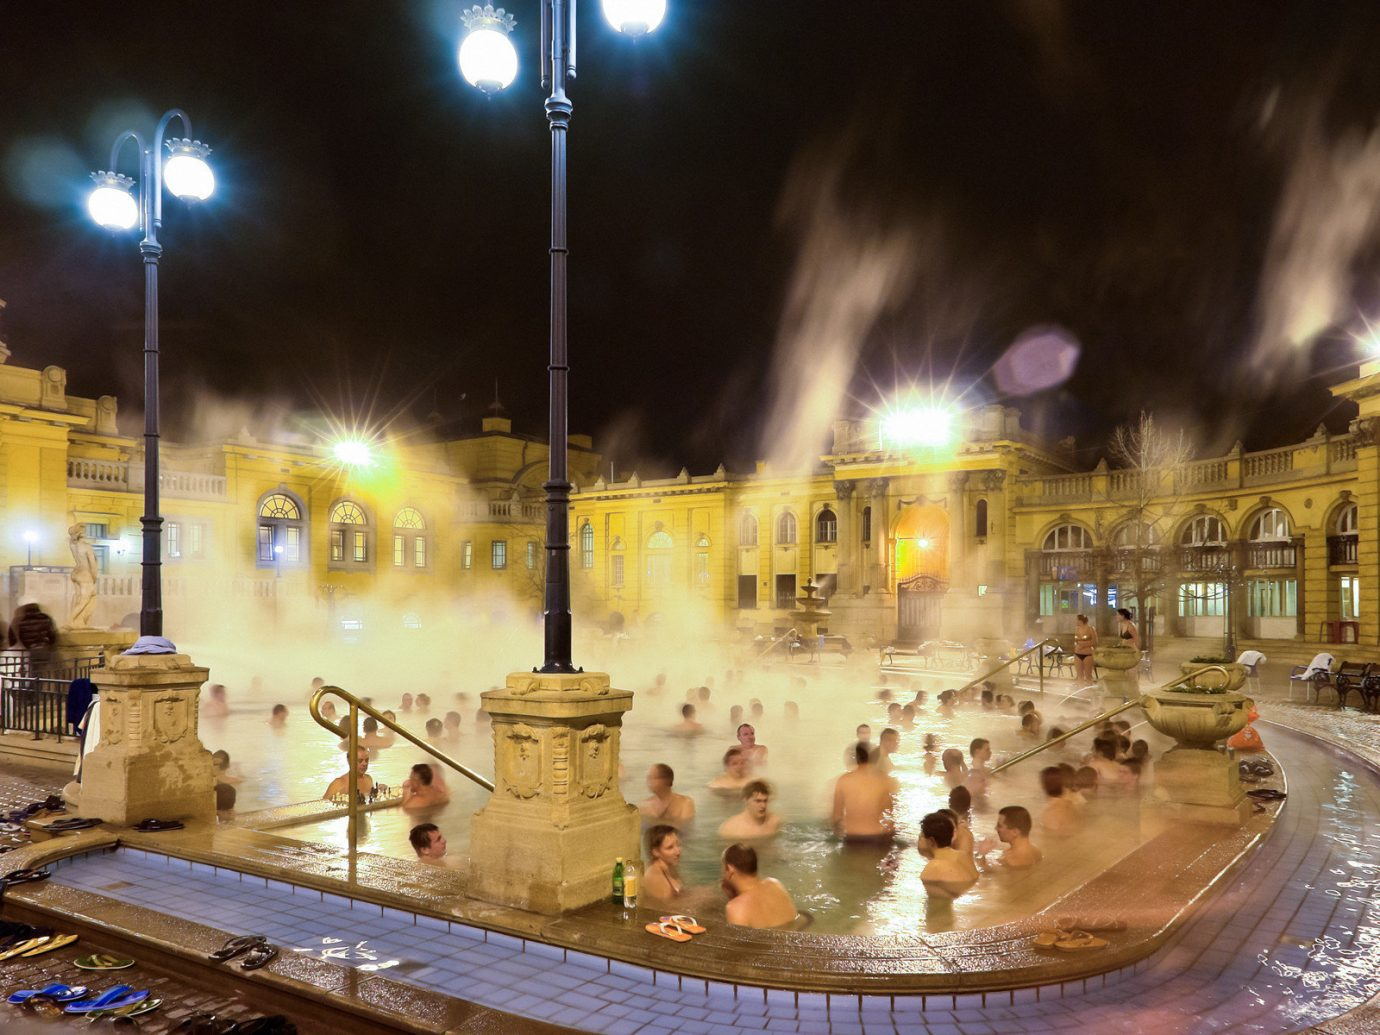 Offbeat fountain night water feature christmas decoration lighting plaza town square